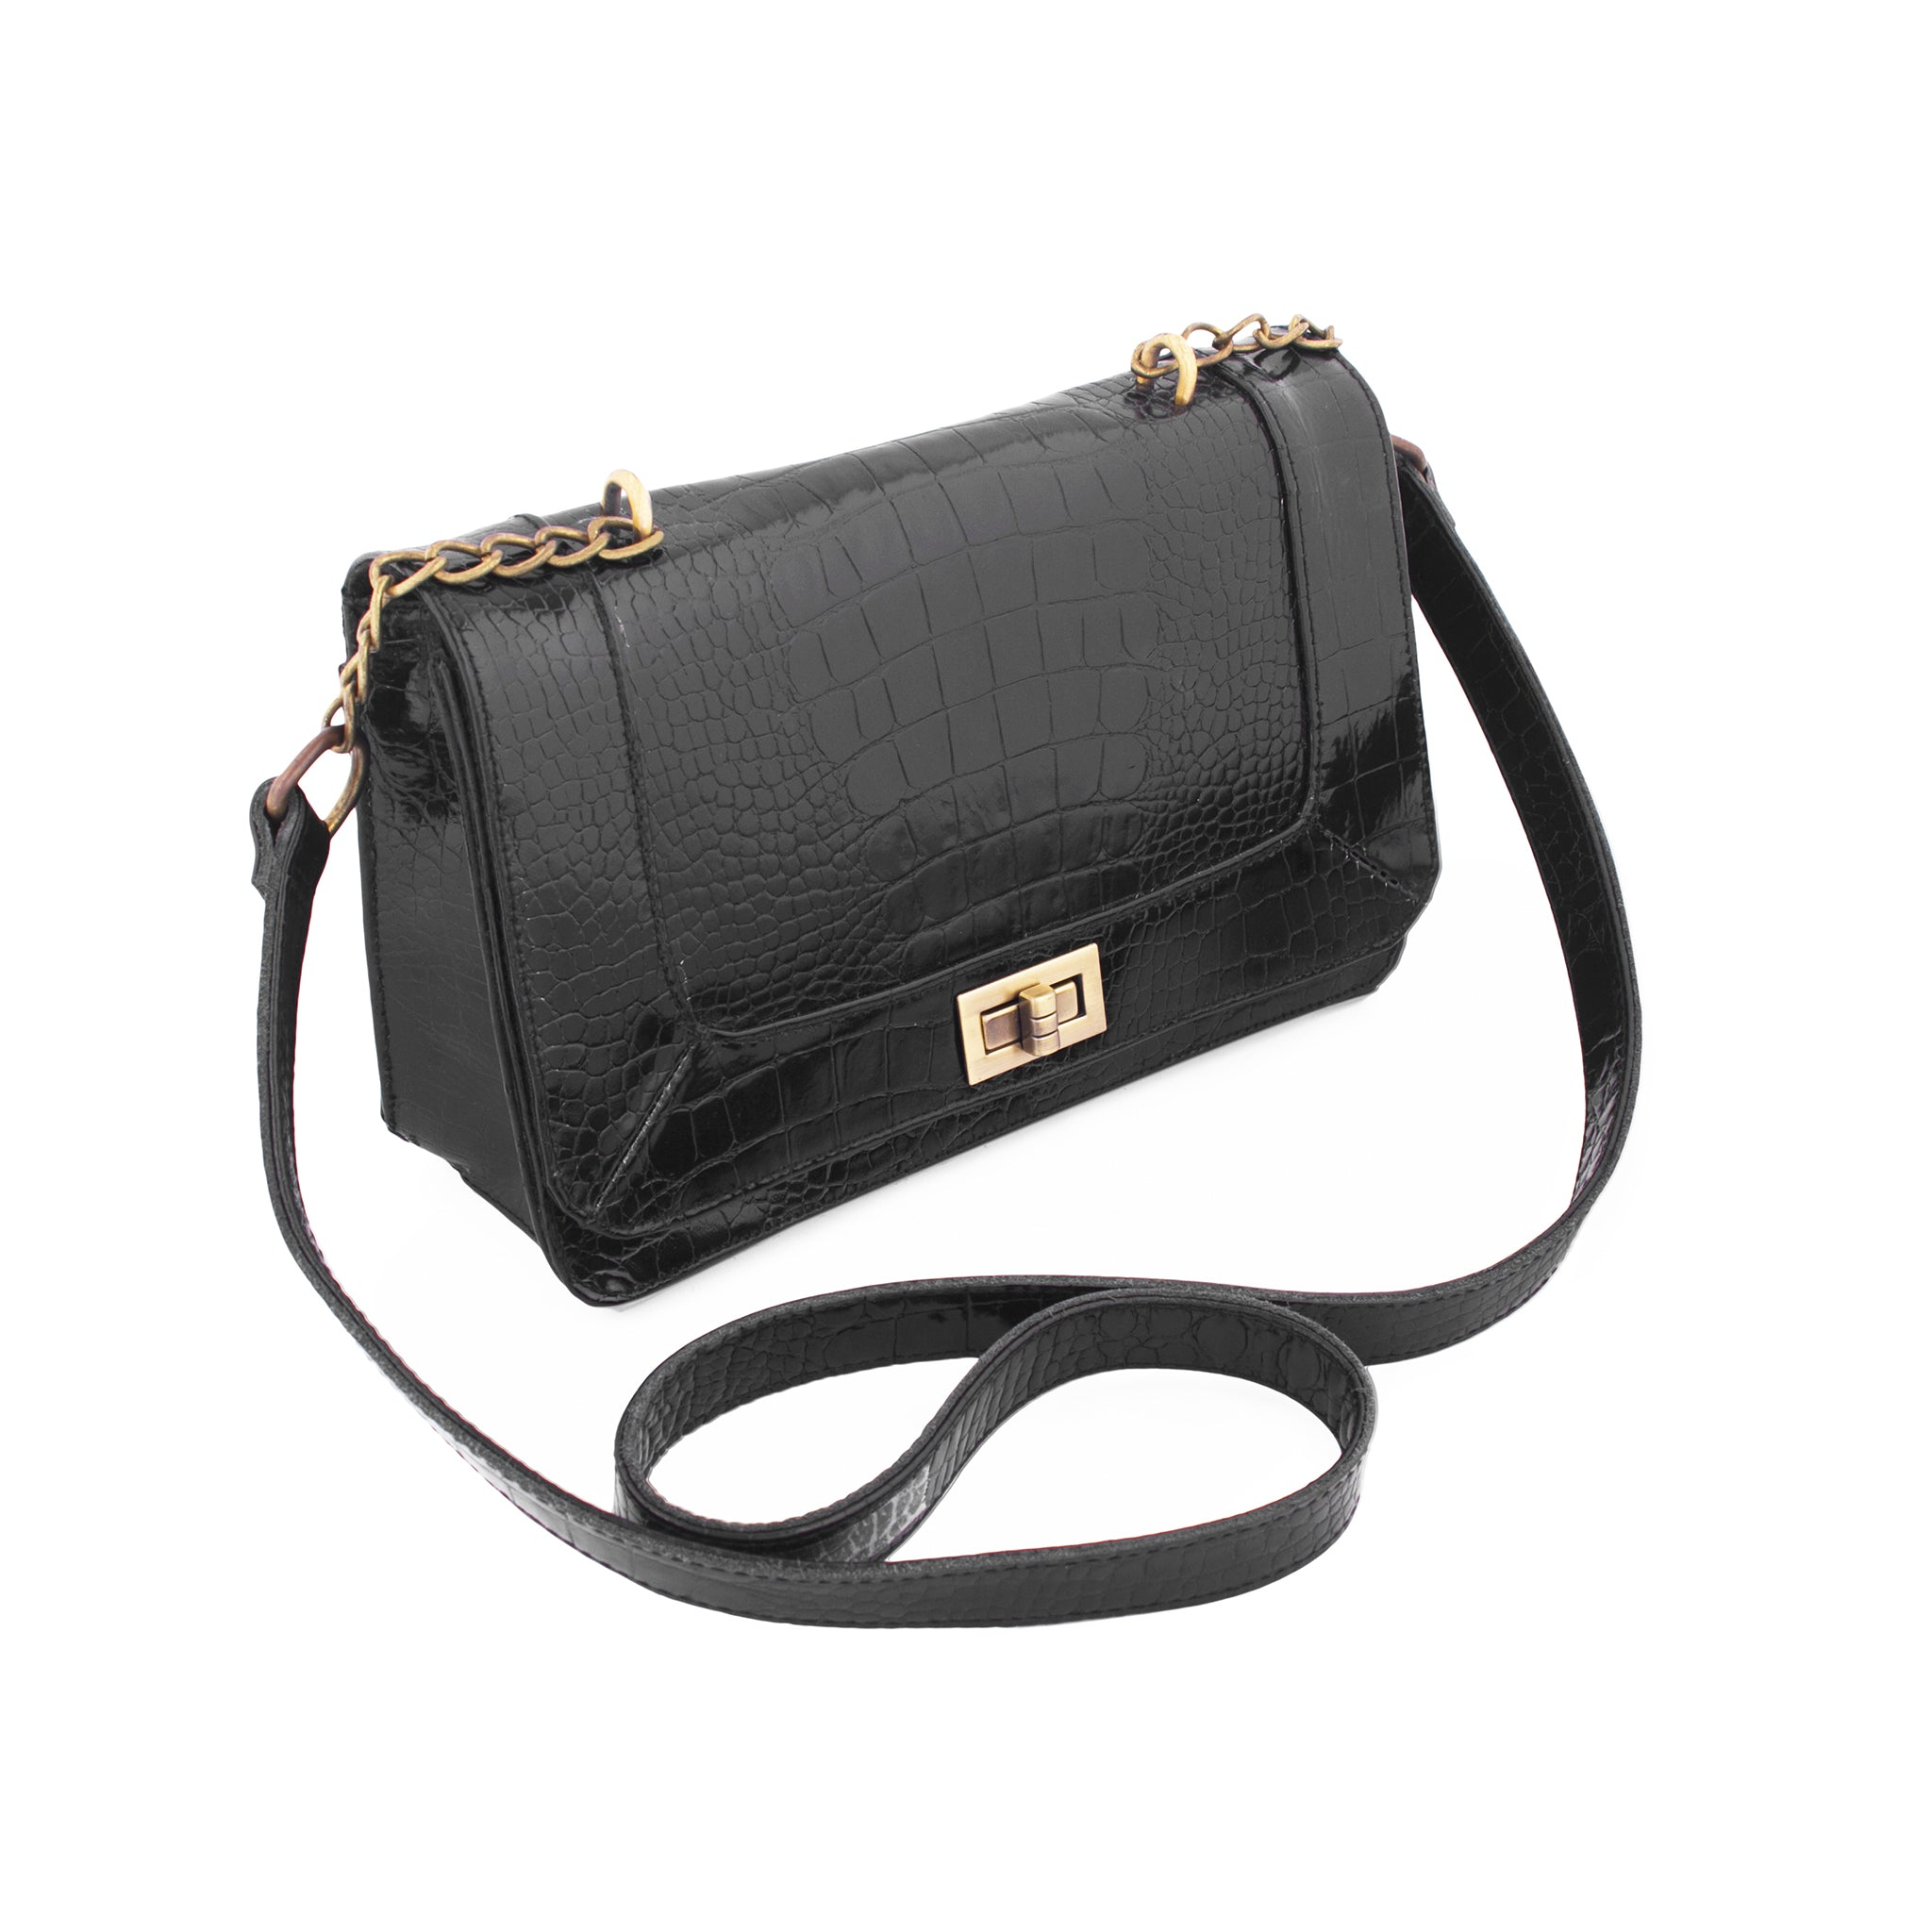 Becca-Crossbody Messenger Bag-Black